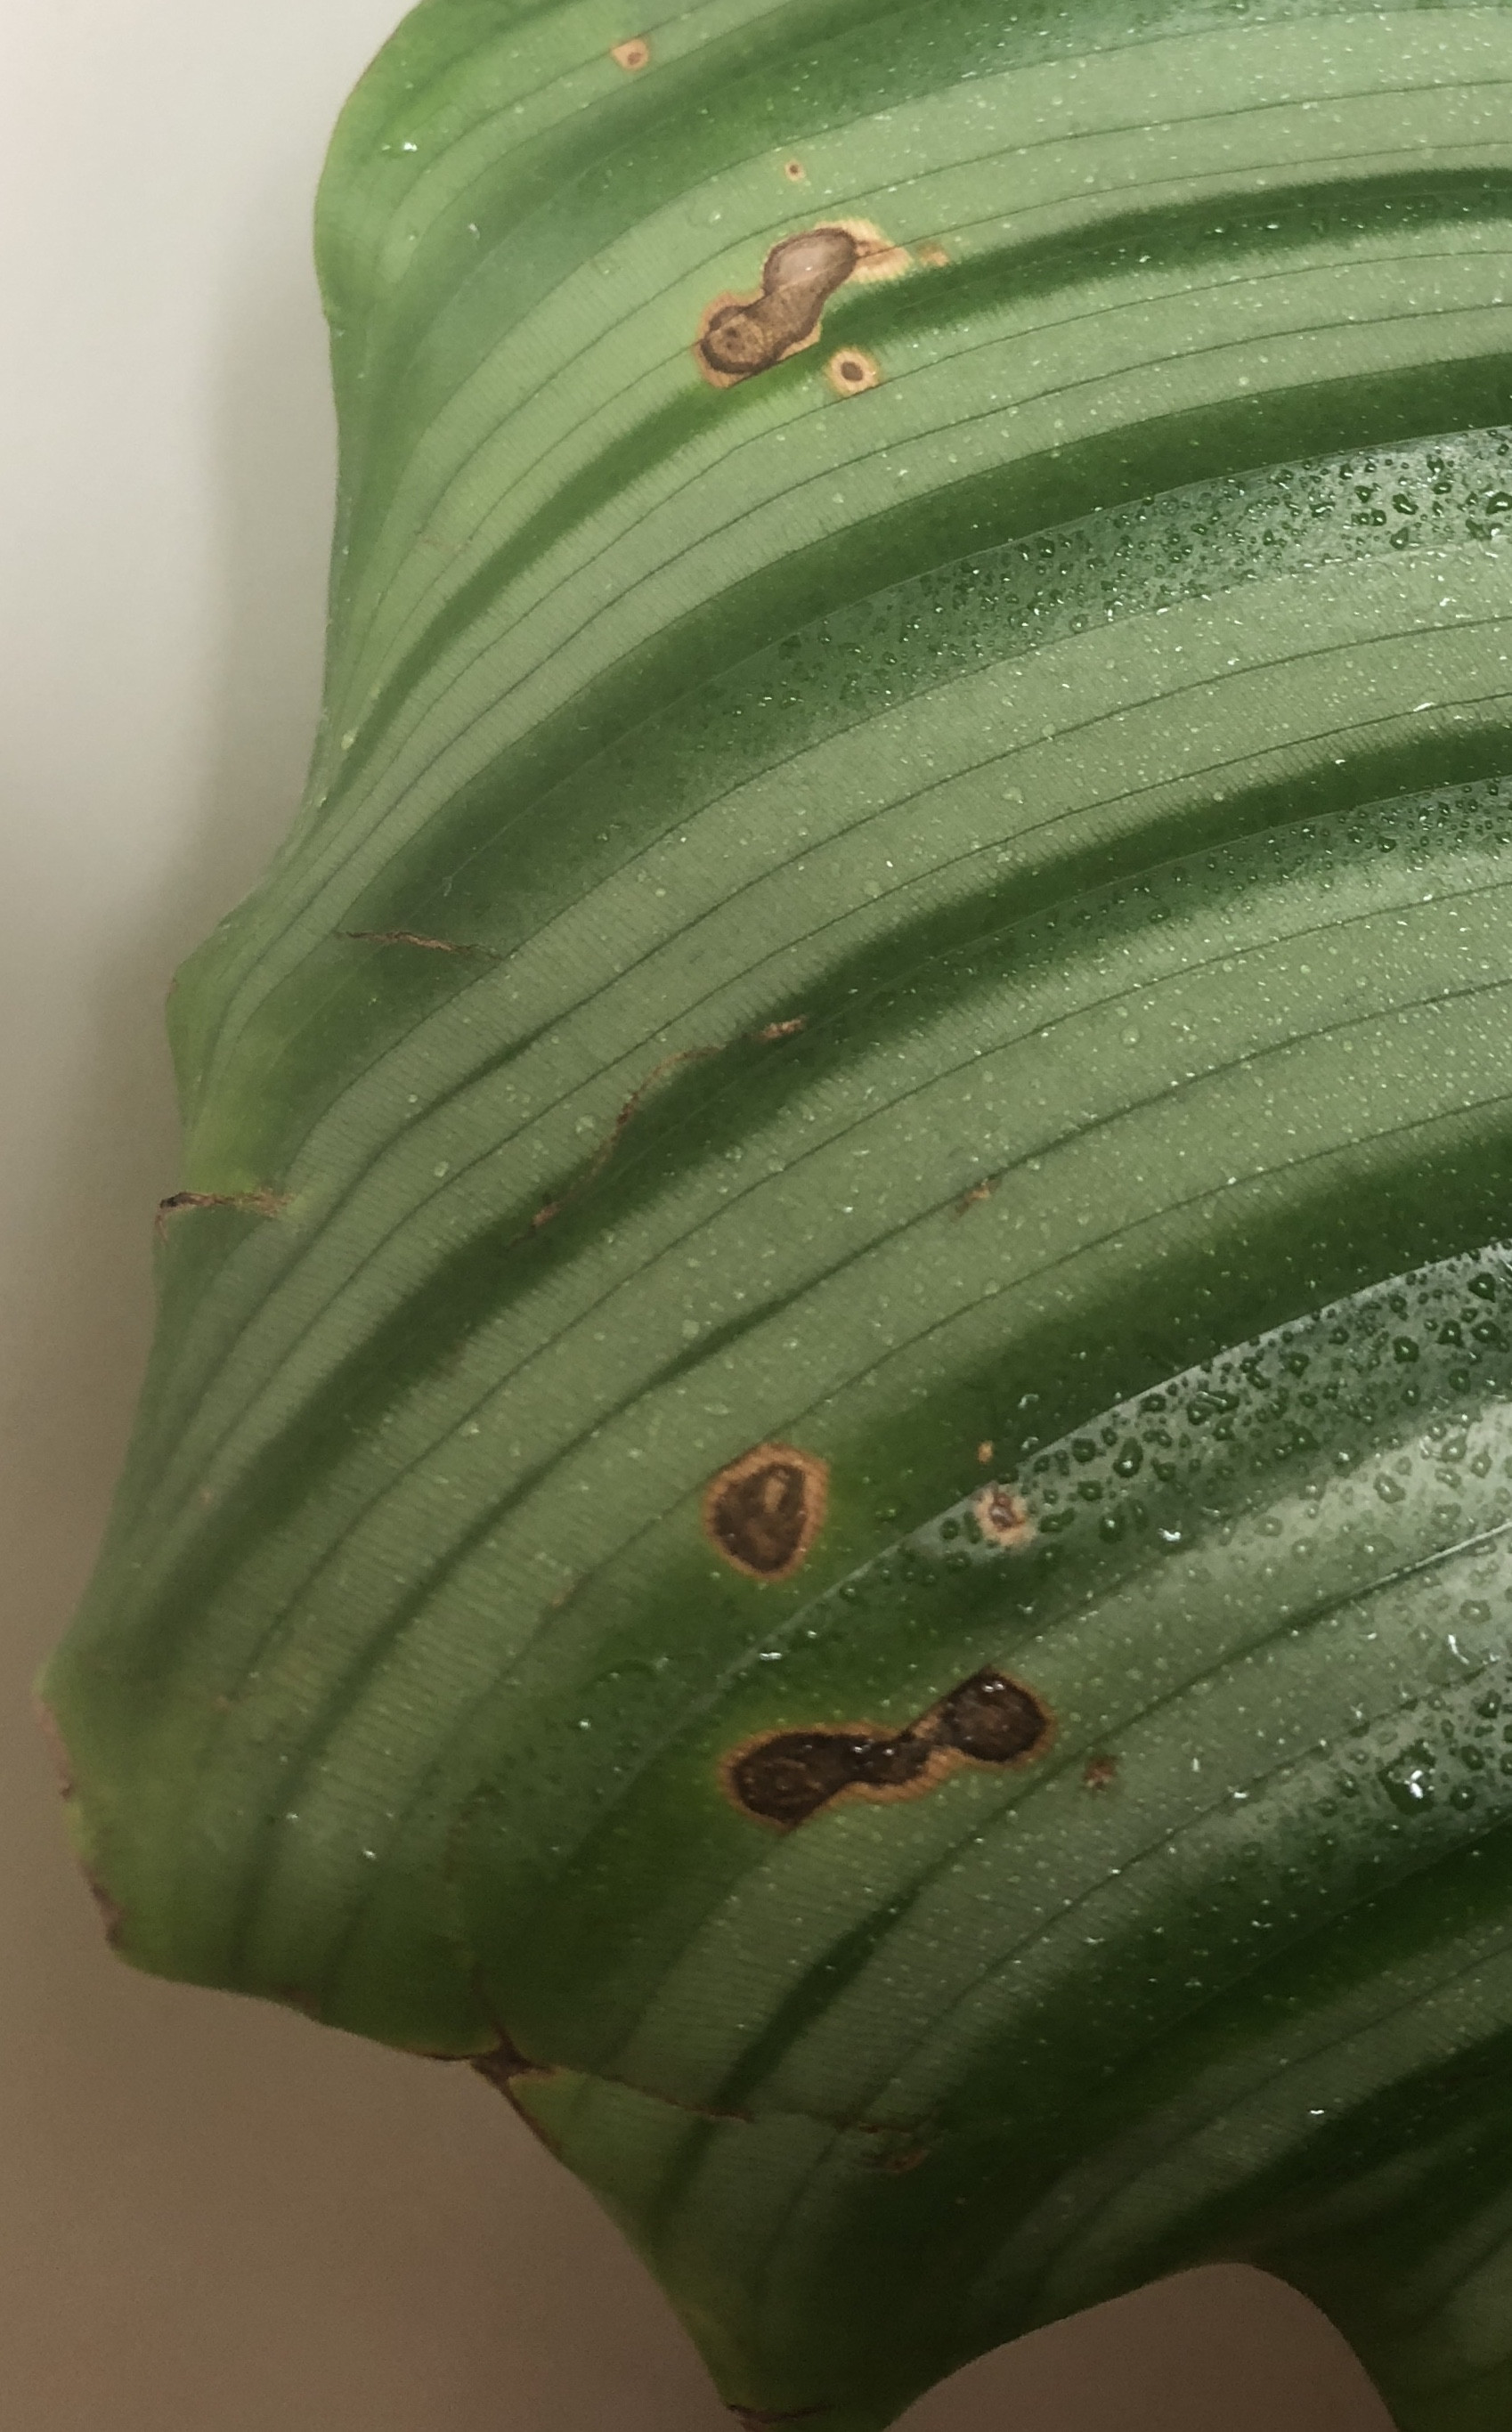 Calathea Orbifolia Diagnosis - Brown And Yellow Spots On Calathea Orbifolia